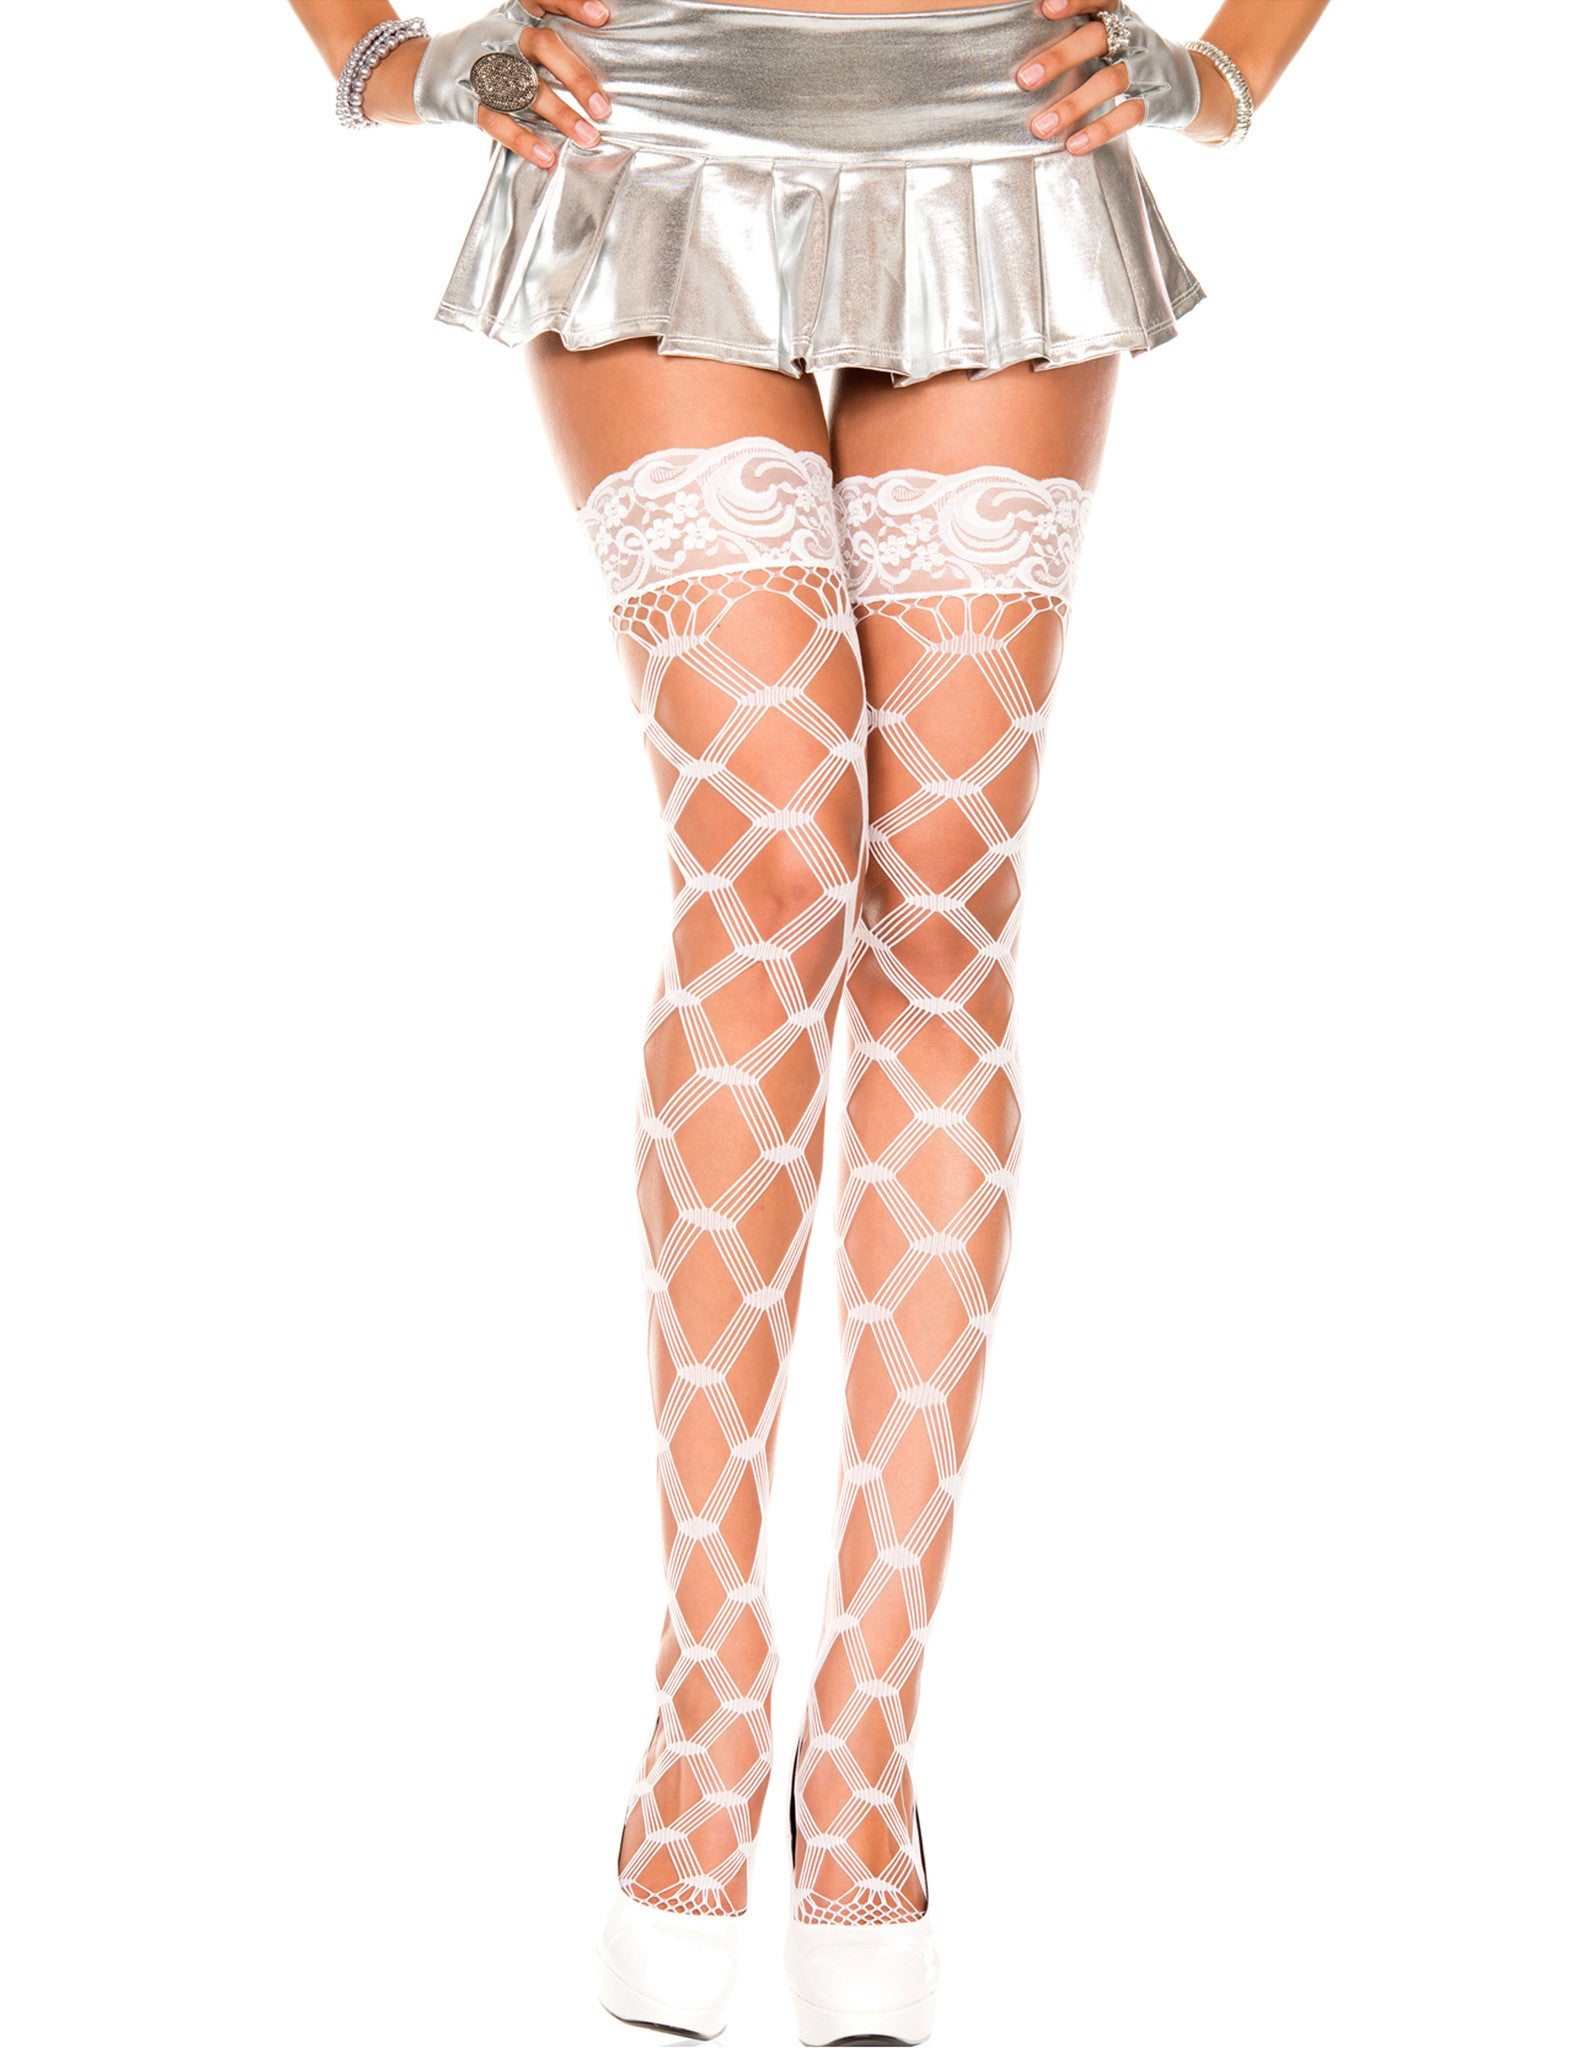 Plus Size Diamond Net Thigh Highs